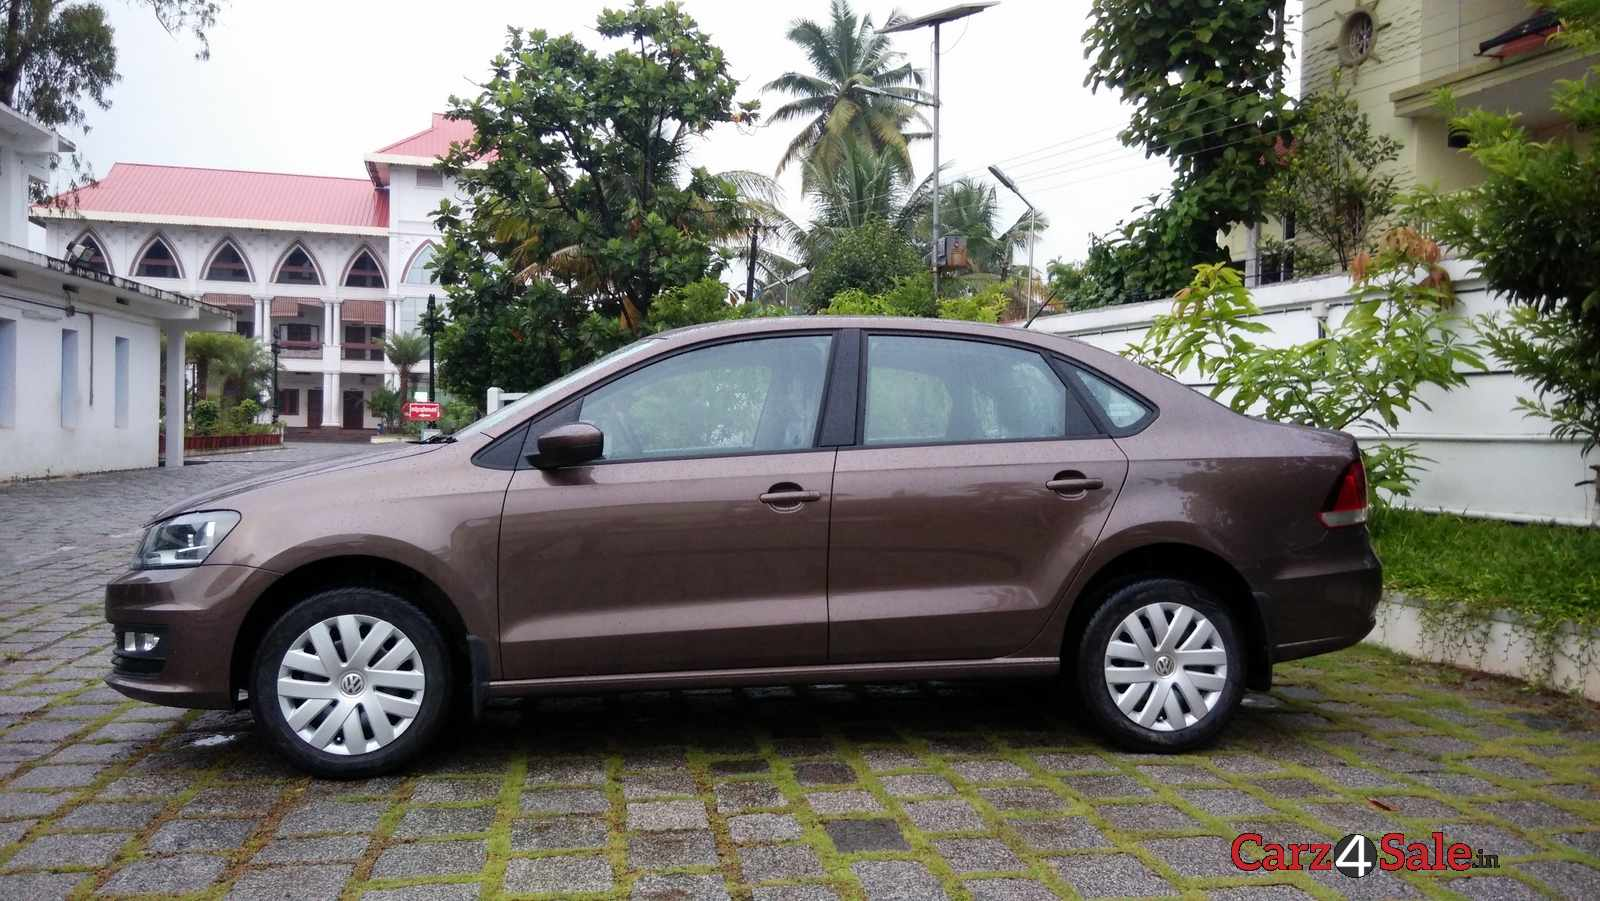 Volkswagen Vento Tsi Comfortline Pic on New Vw Car Dealers